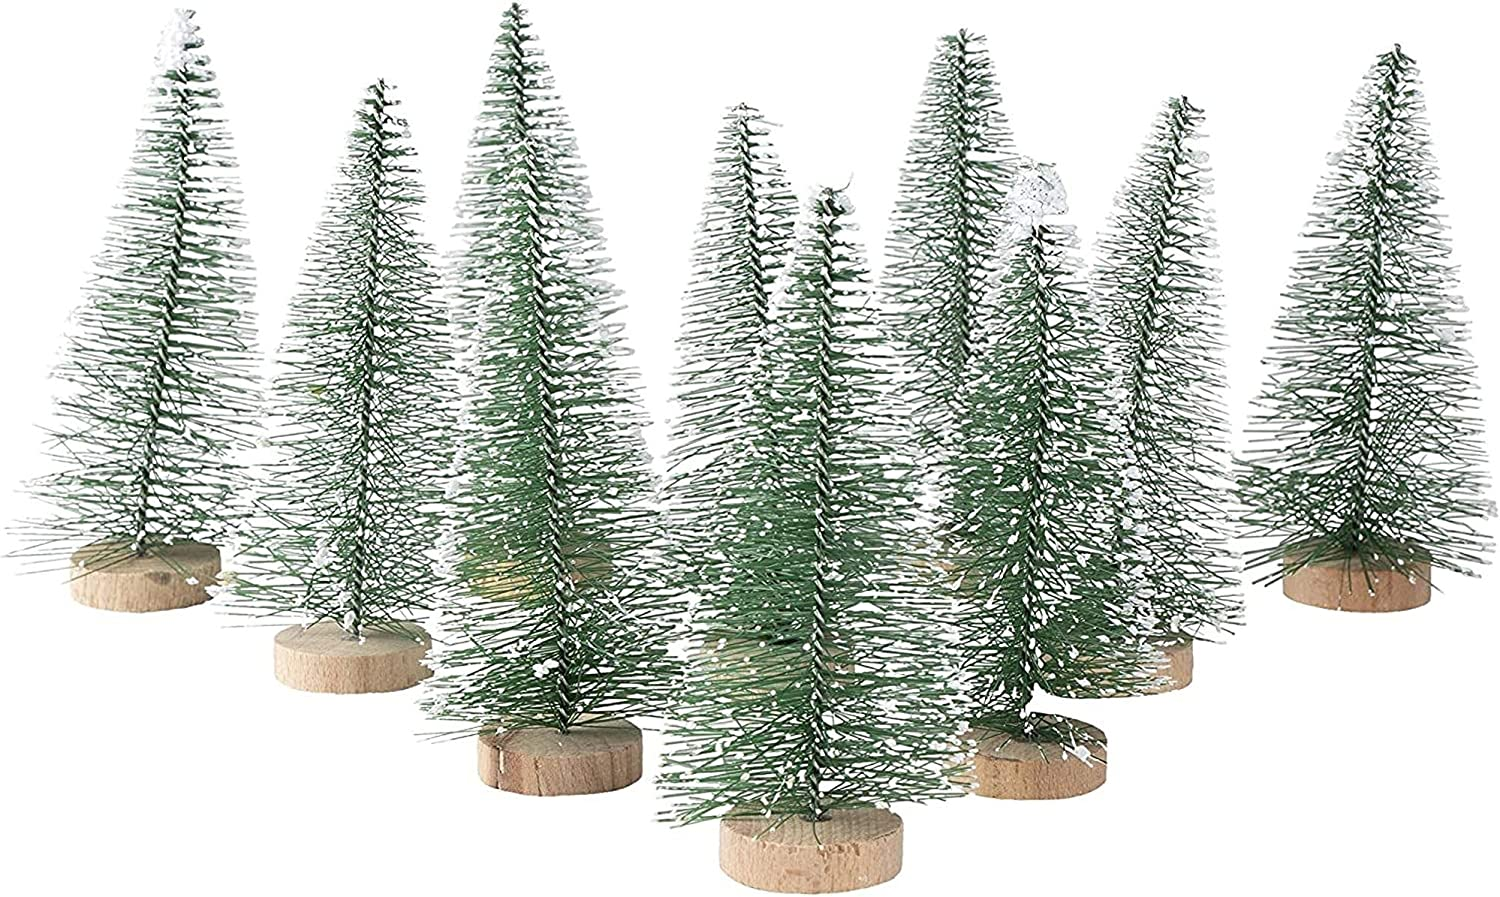 Mini Christmas Tree Table Top Ranking TOP3 Max 42% OFF Decorations Decor Holiday x 4.25